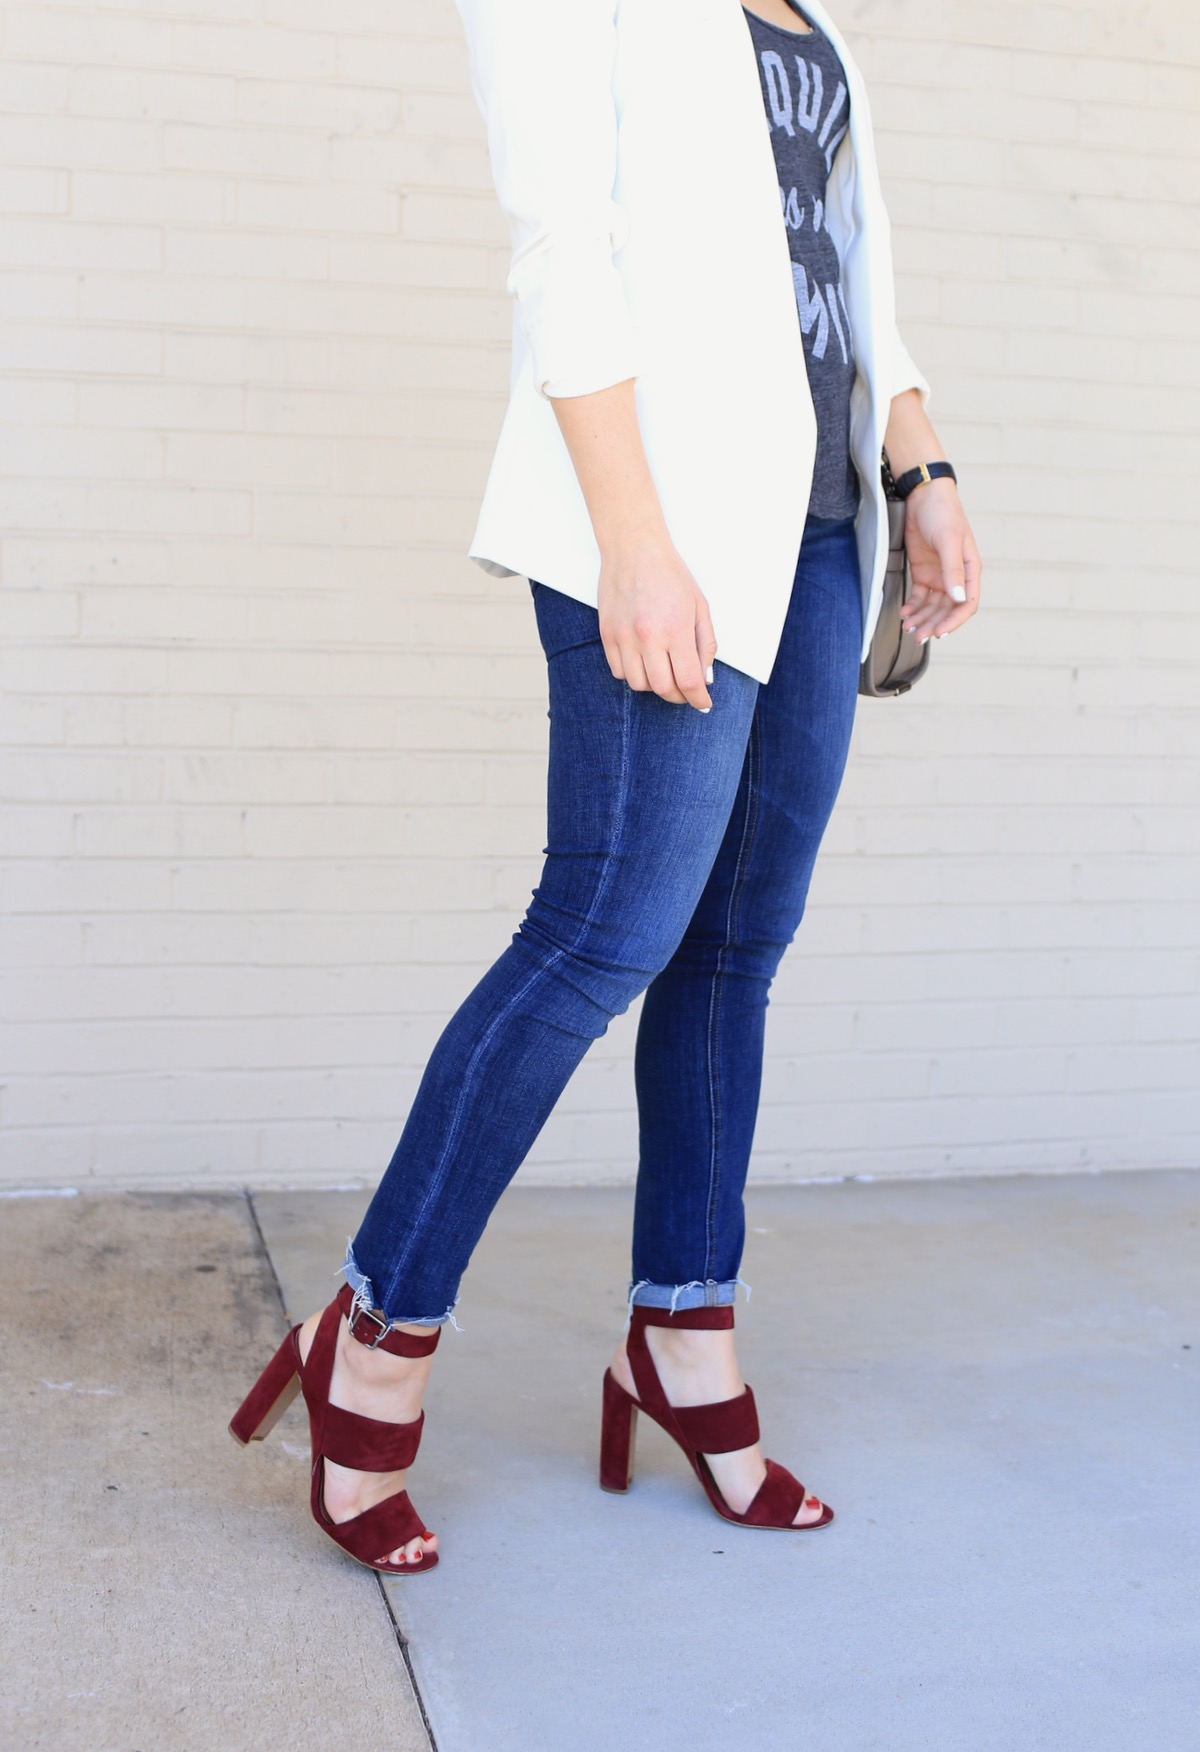 madewell sandals and jeans @mystylevita - 1